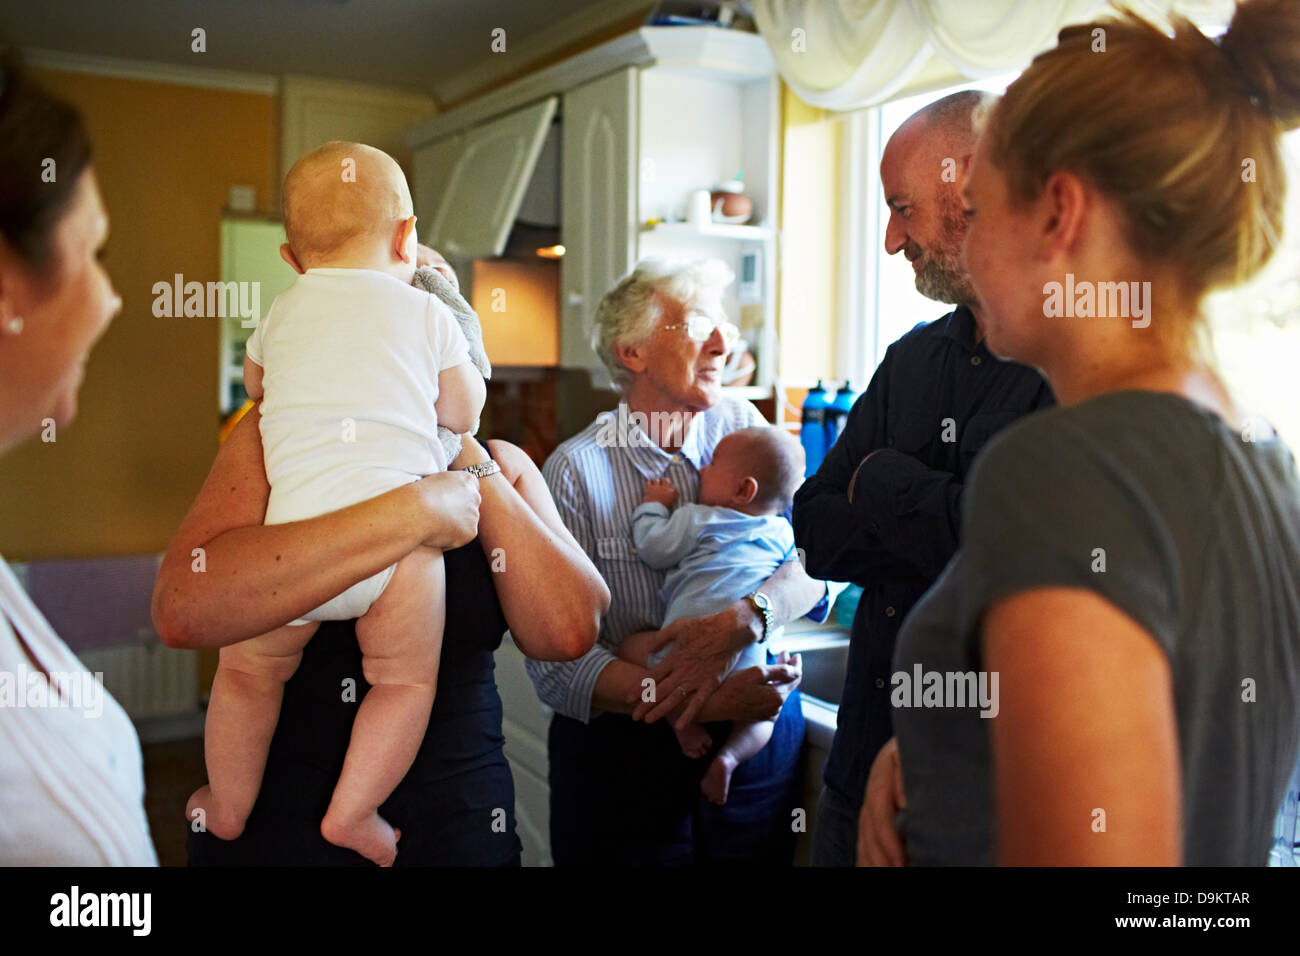 Family gathered in kitchen at home - Stock Image